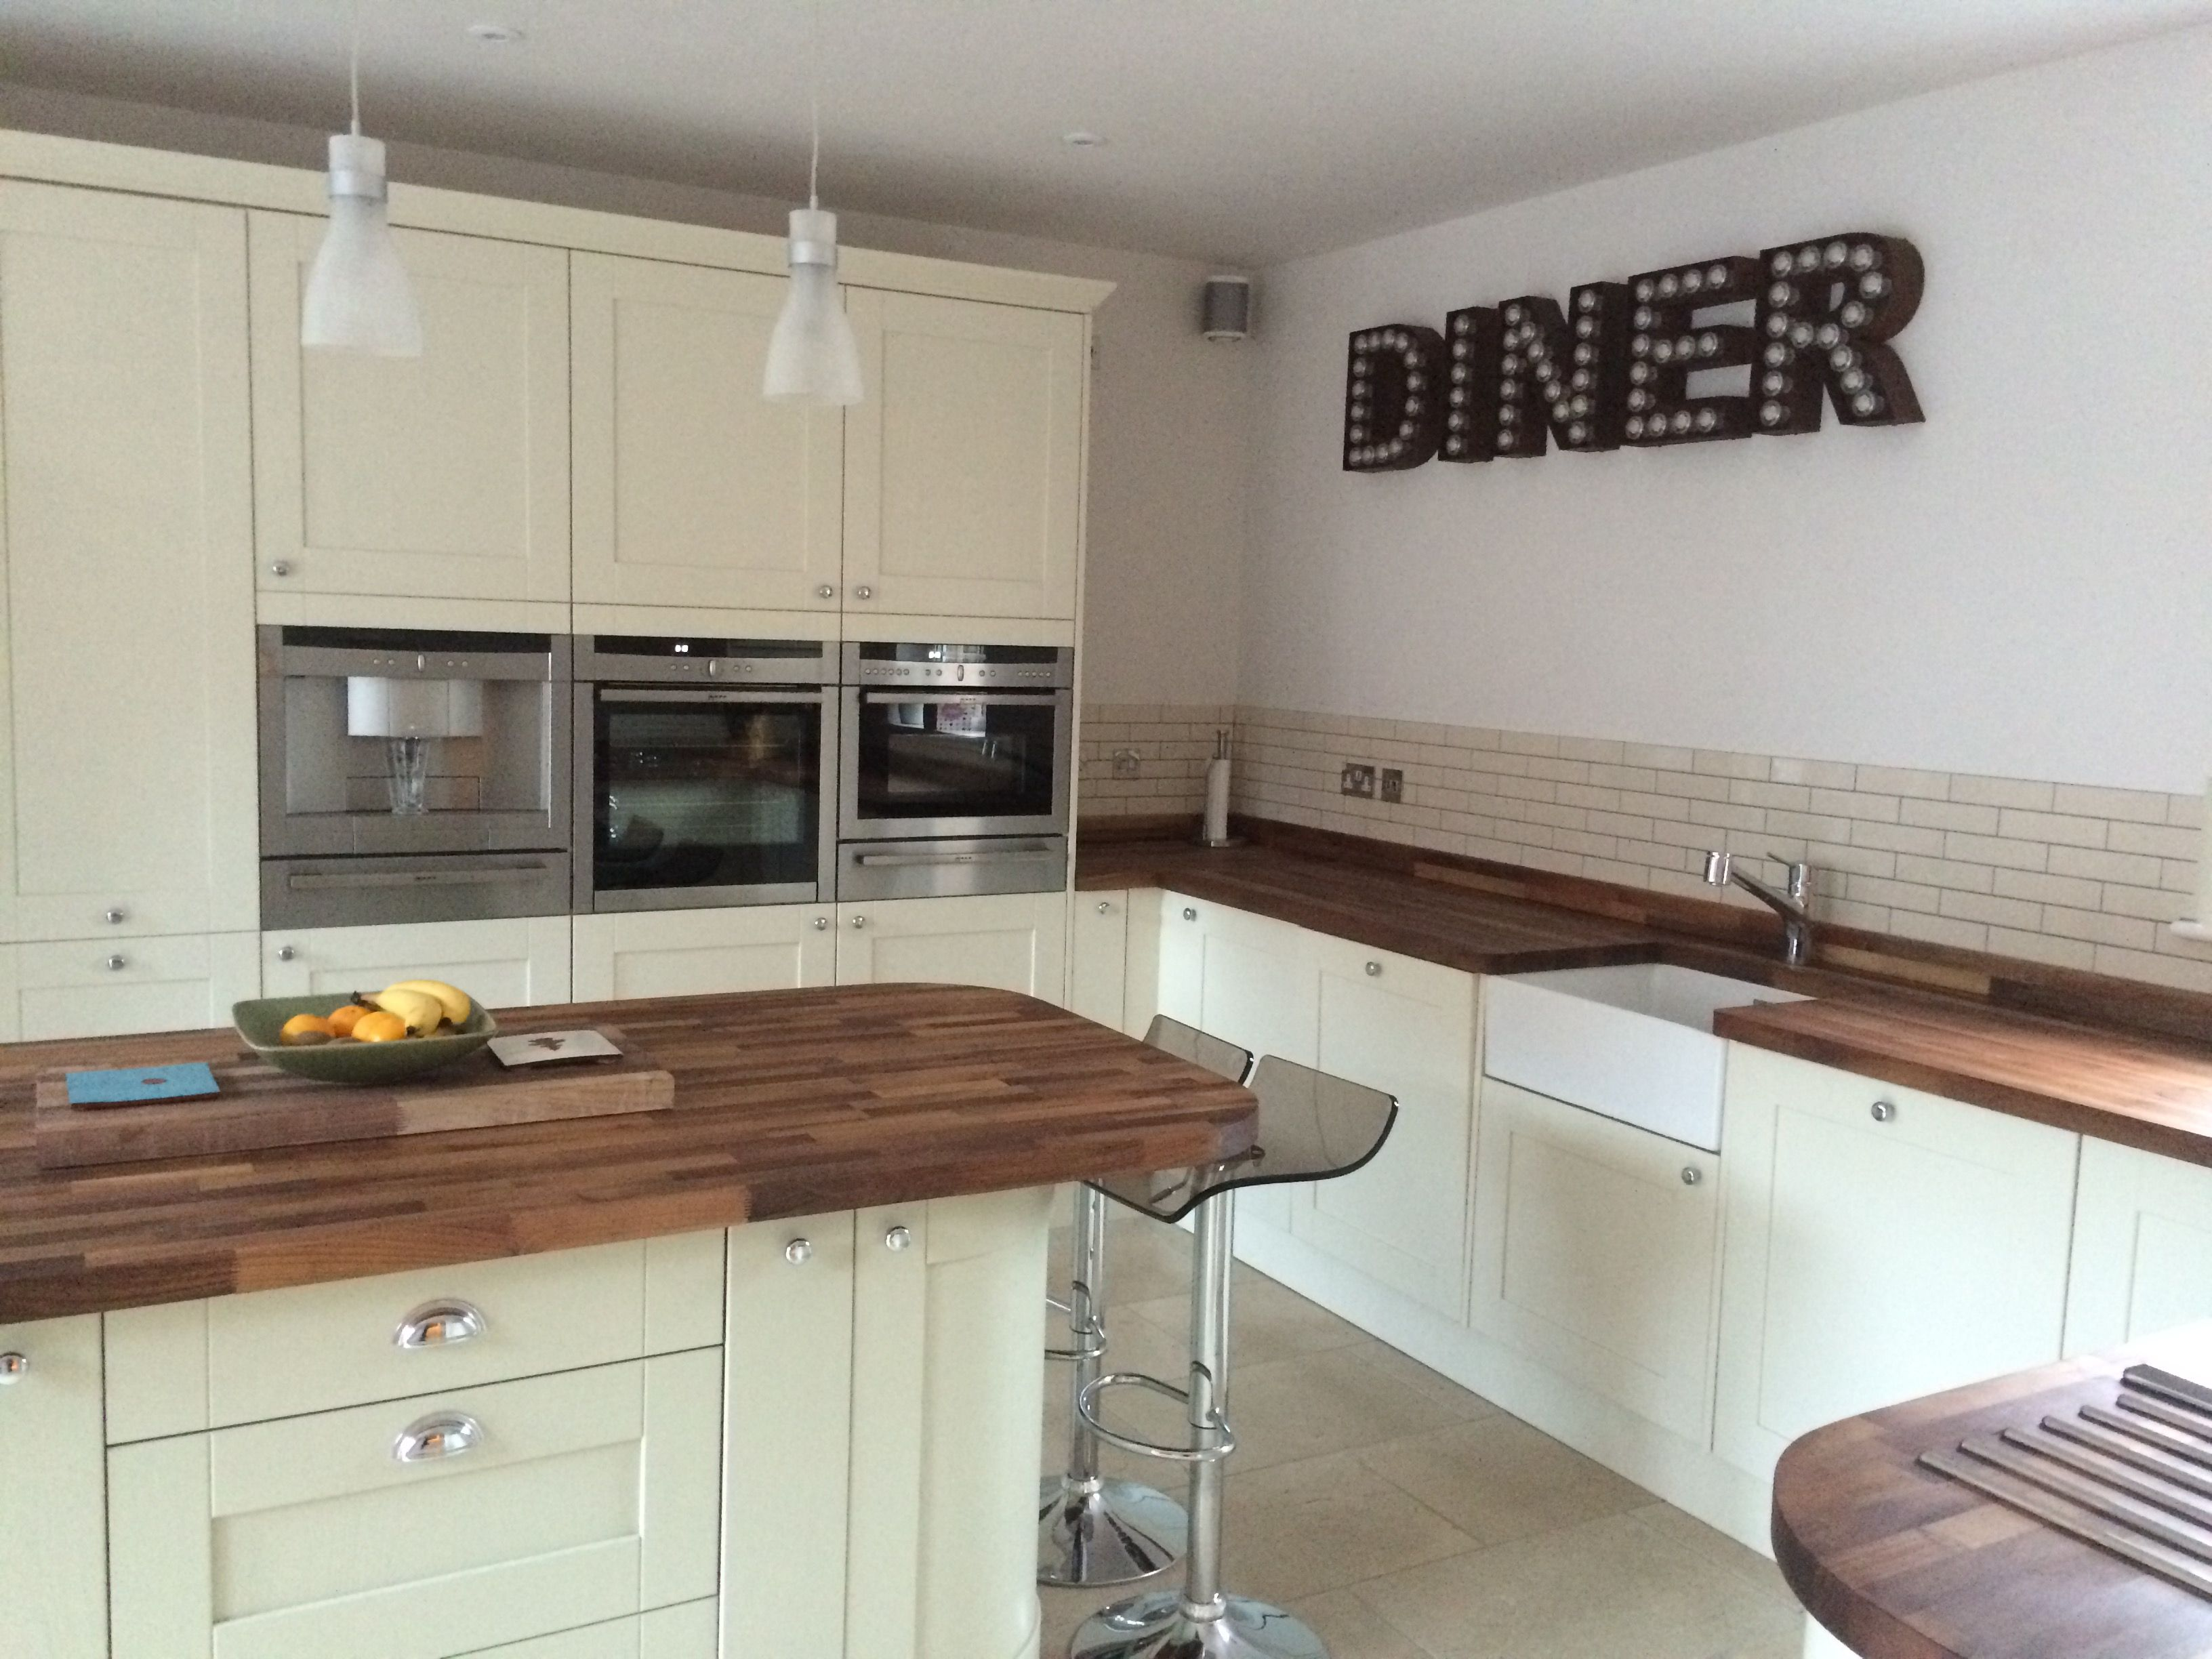 Wren Kitchens: Shaker Sage and Alabaster Timber - This was sent to ...